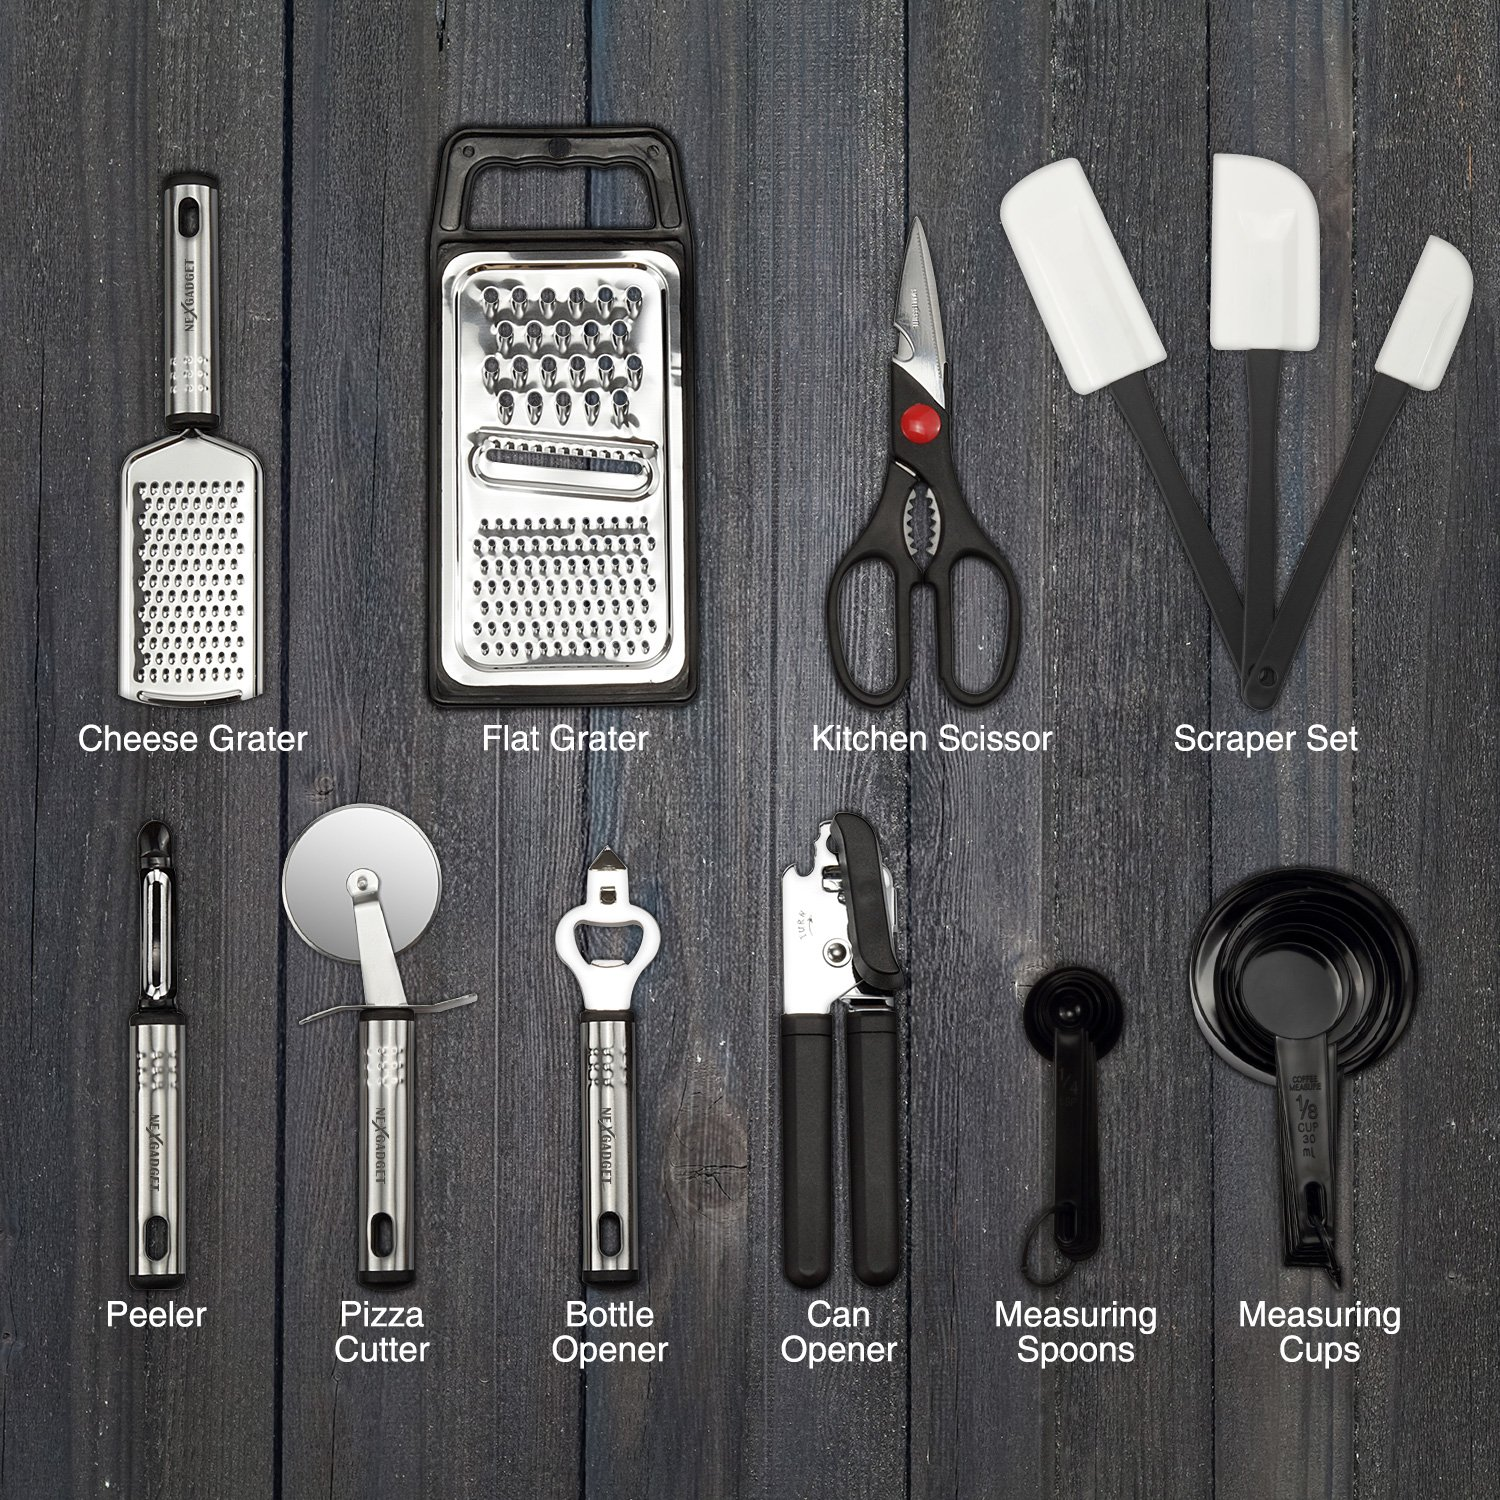 NexGadget Premium Kitchen Utensils 38 Pieces Kitchen Utensils Sets Stainless Steel And Nylon Cooking Tools Spoons, Turners, Tongs, Spatulas, Pizza Cutter, Whisk And More by NEXGADGET (Image #3)